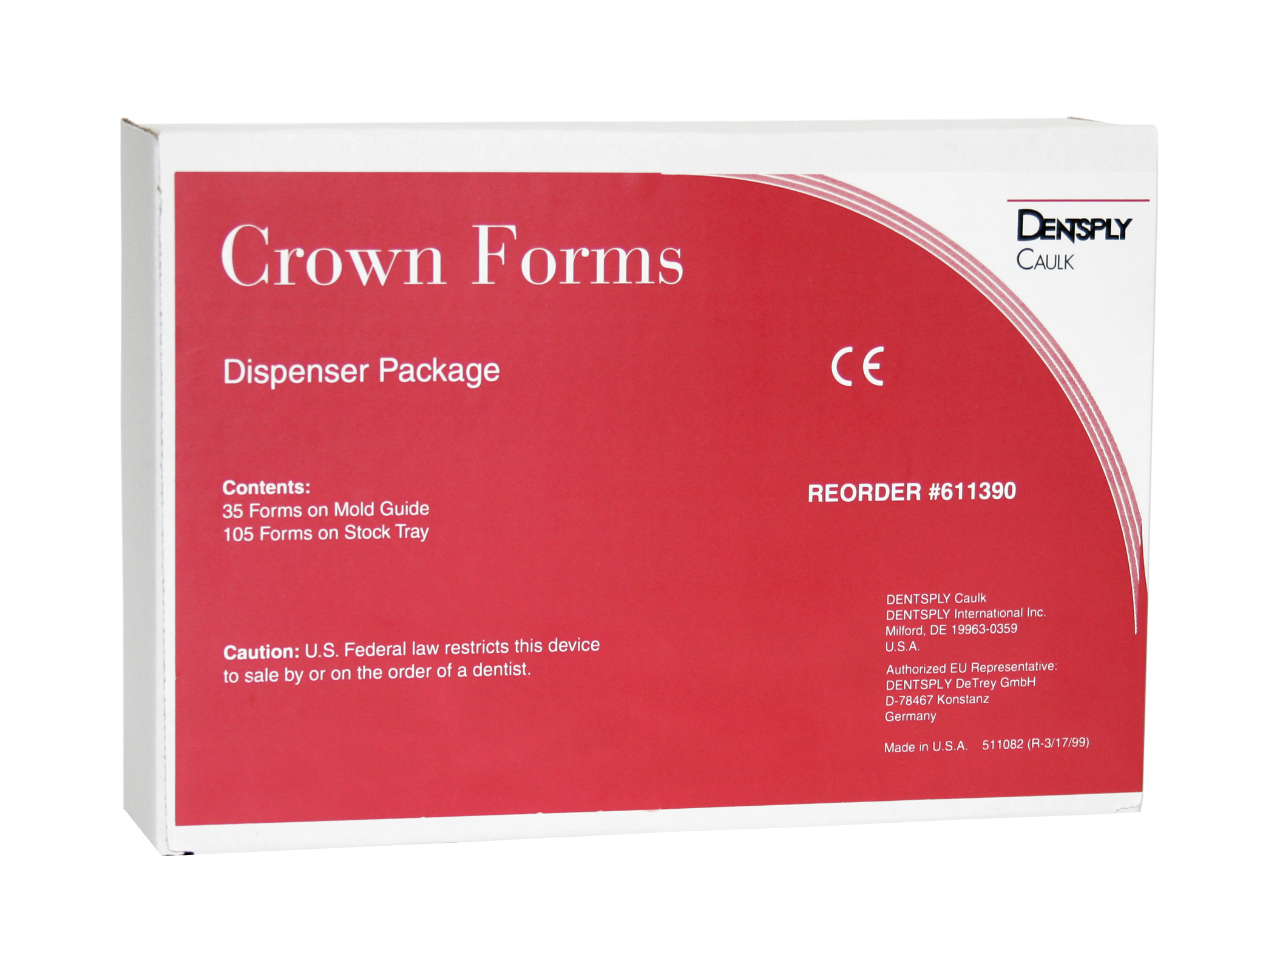 Crown Forms Dispenser Package